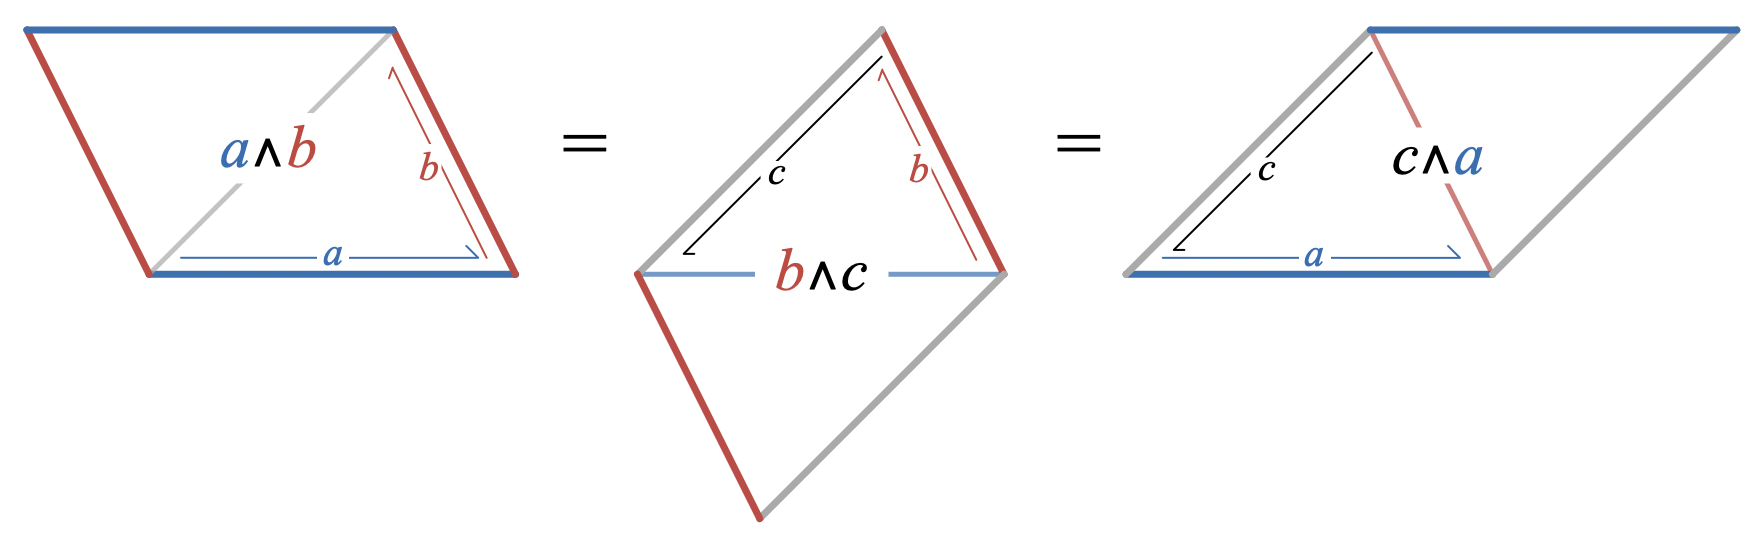 Equal-area parallelograms representing a wedge b, b wedge c, and c wedge a.